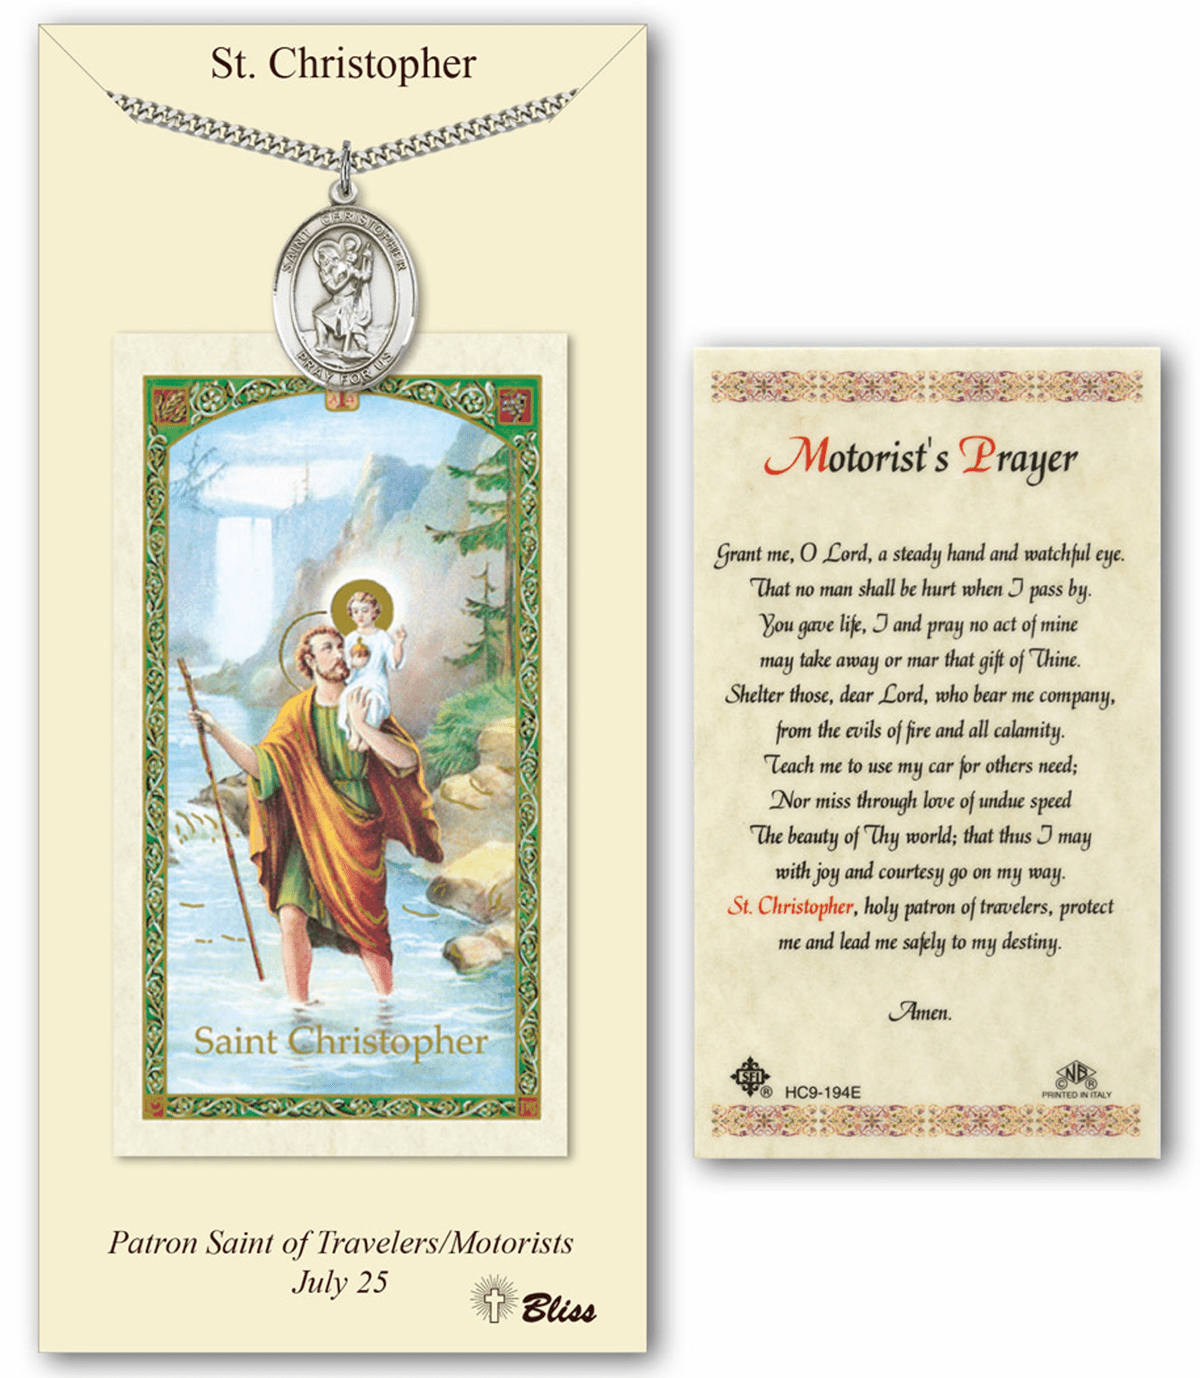 Bliss Mfg St Christopher Motorist Prayer Card & Pendant Gift Set